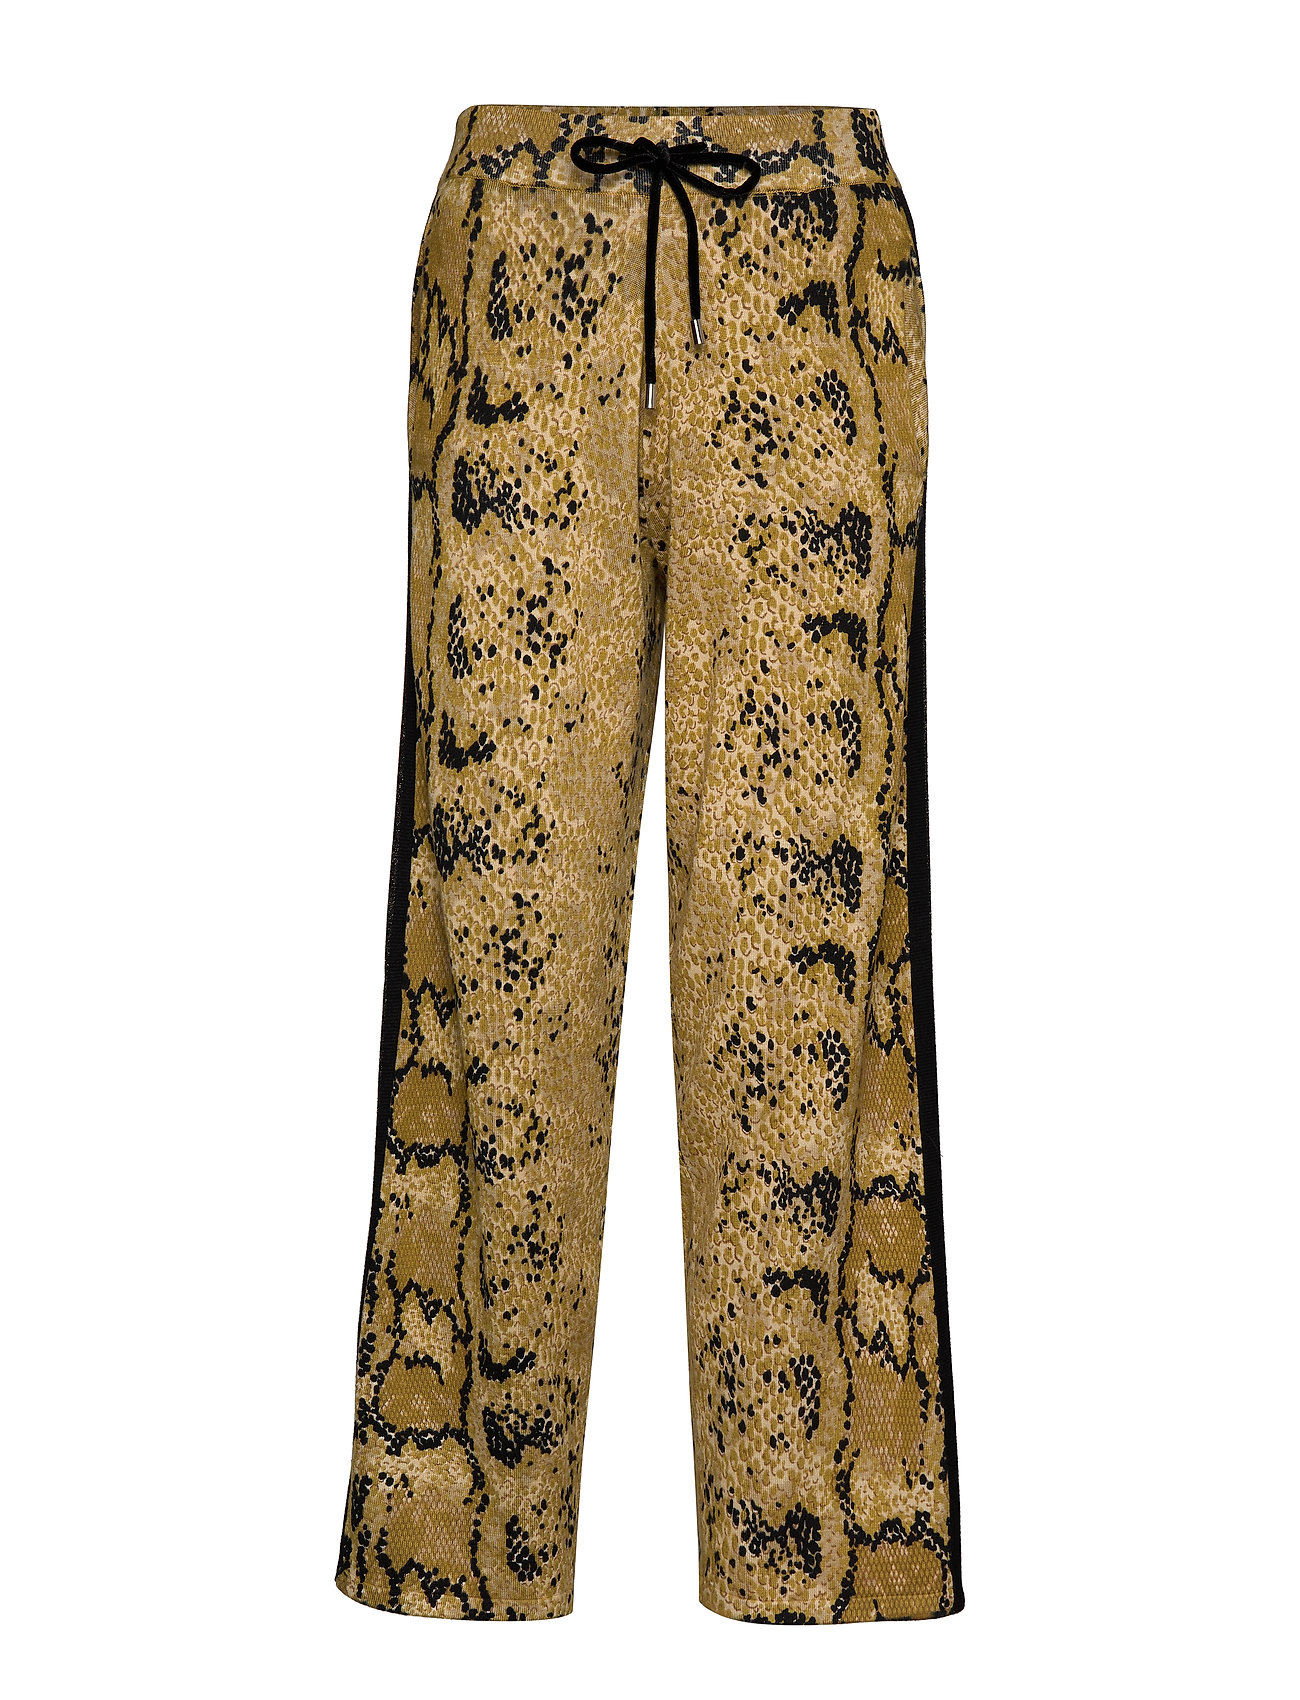 Coster Copenhagen Knitted pants in pyton print - YELLOW PYTON